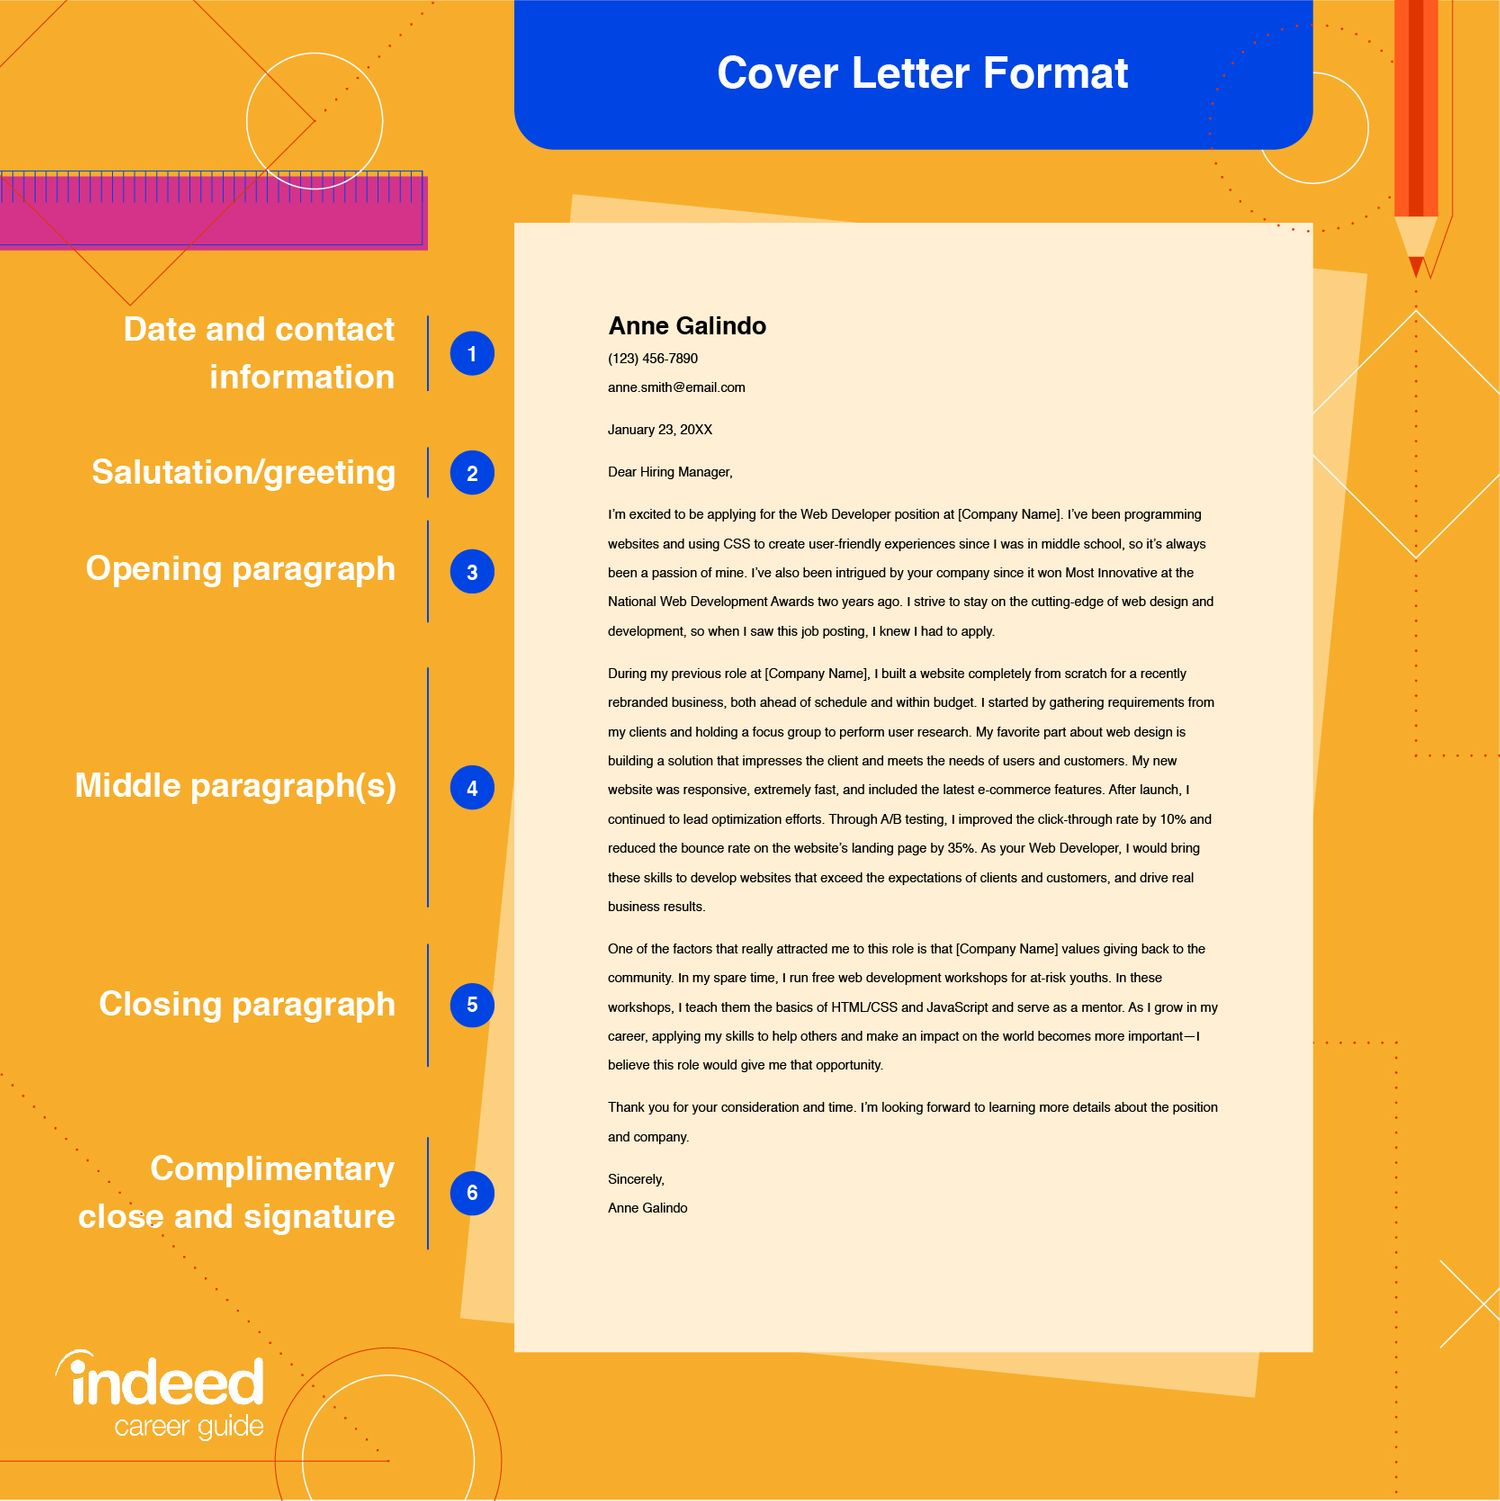 powerful ways to start cover letter with examples indeed opening line for resume resized Resume Opening Line For Resume